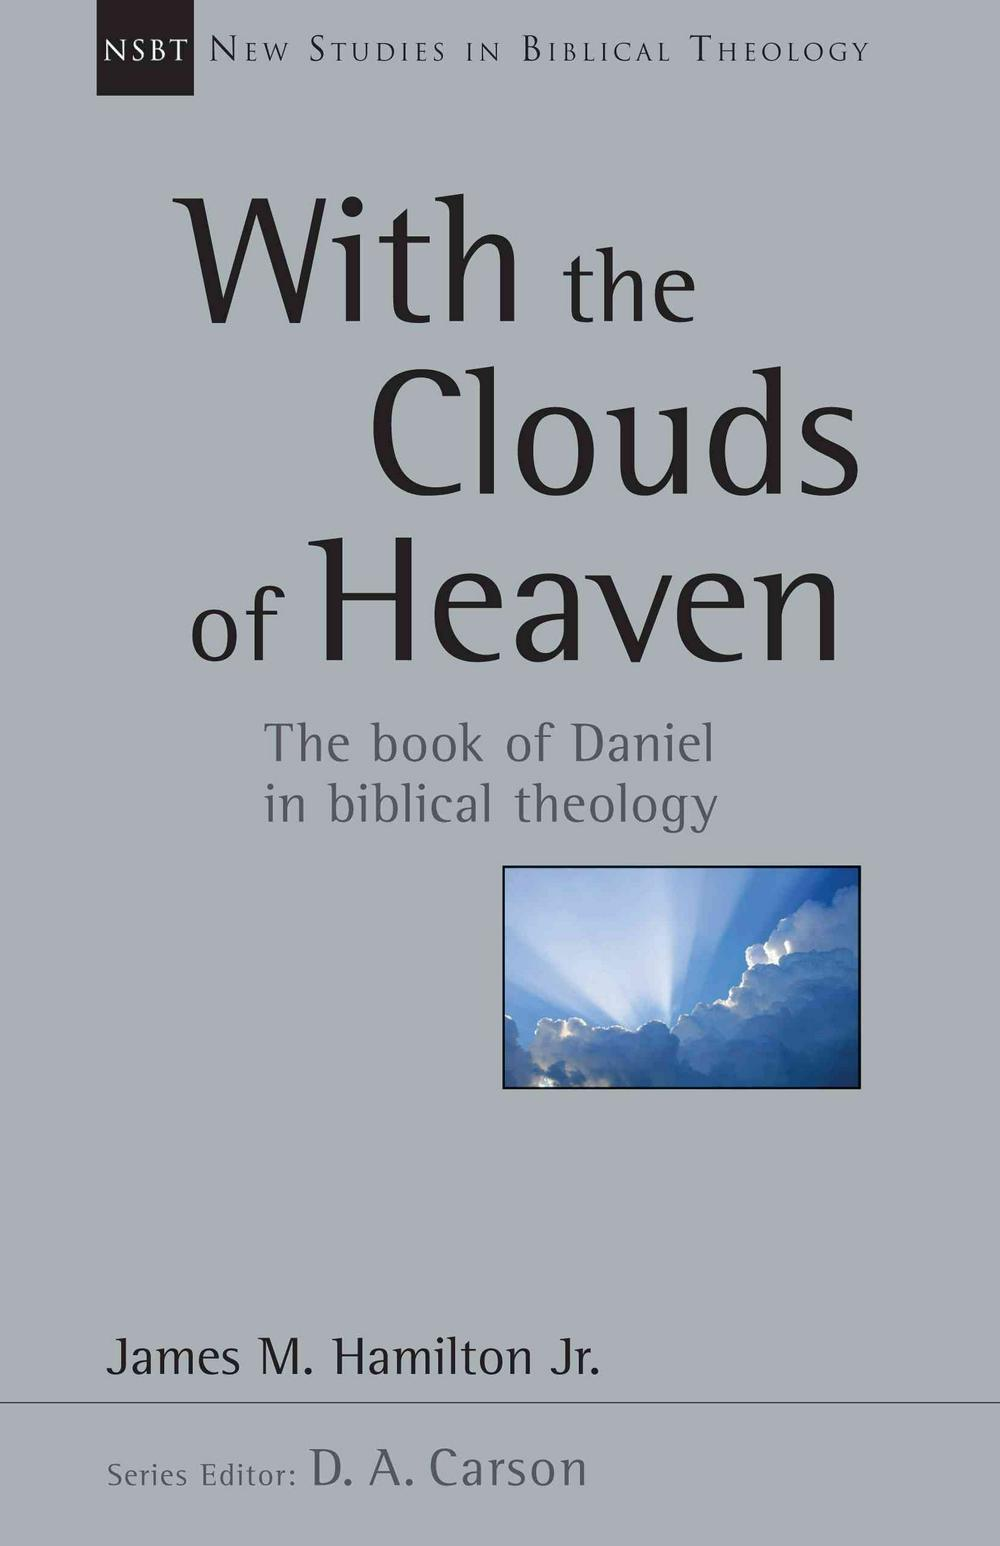 With the Clouds of Heaven: The Book of Daniel in Biblical Theology (New Studies in Biblical Theology) by James M. Hamilton, ISBN: 9780830826339